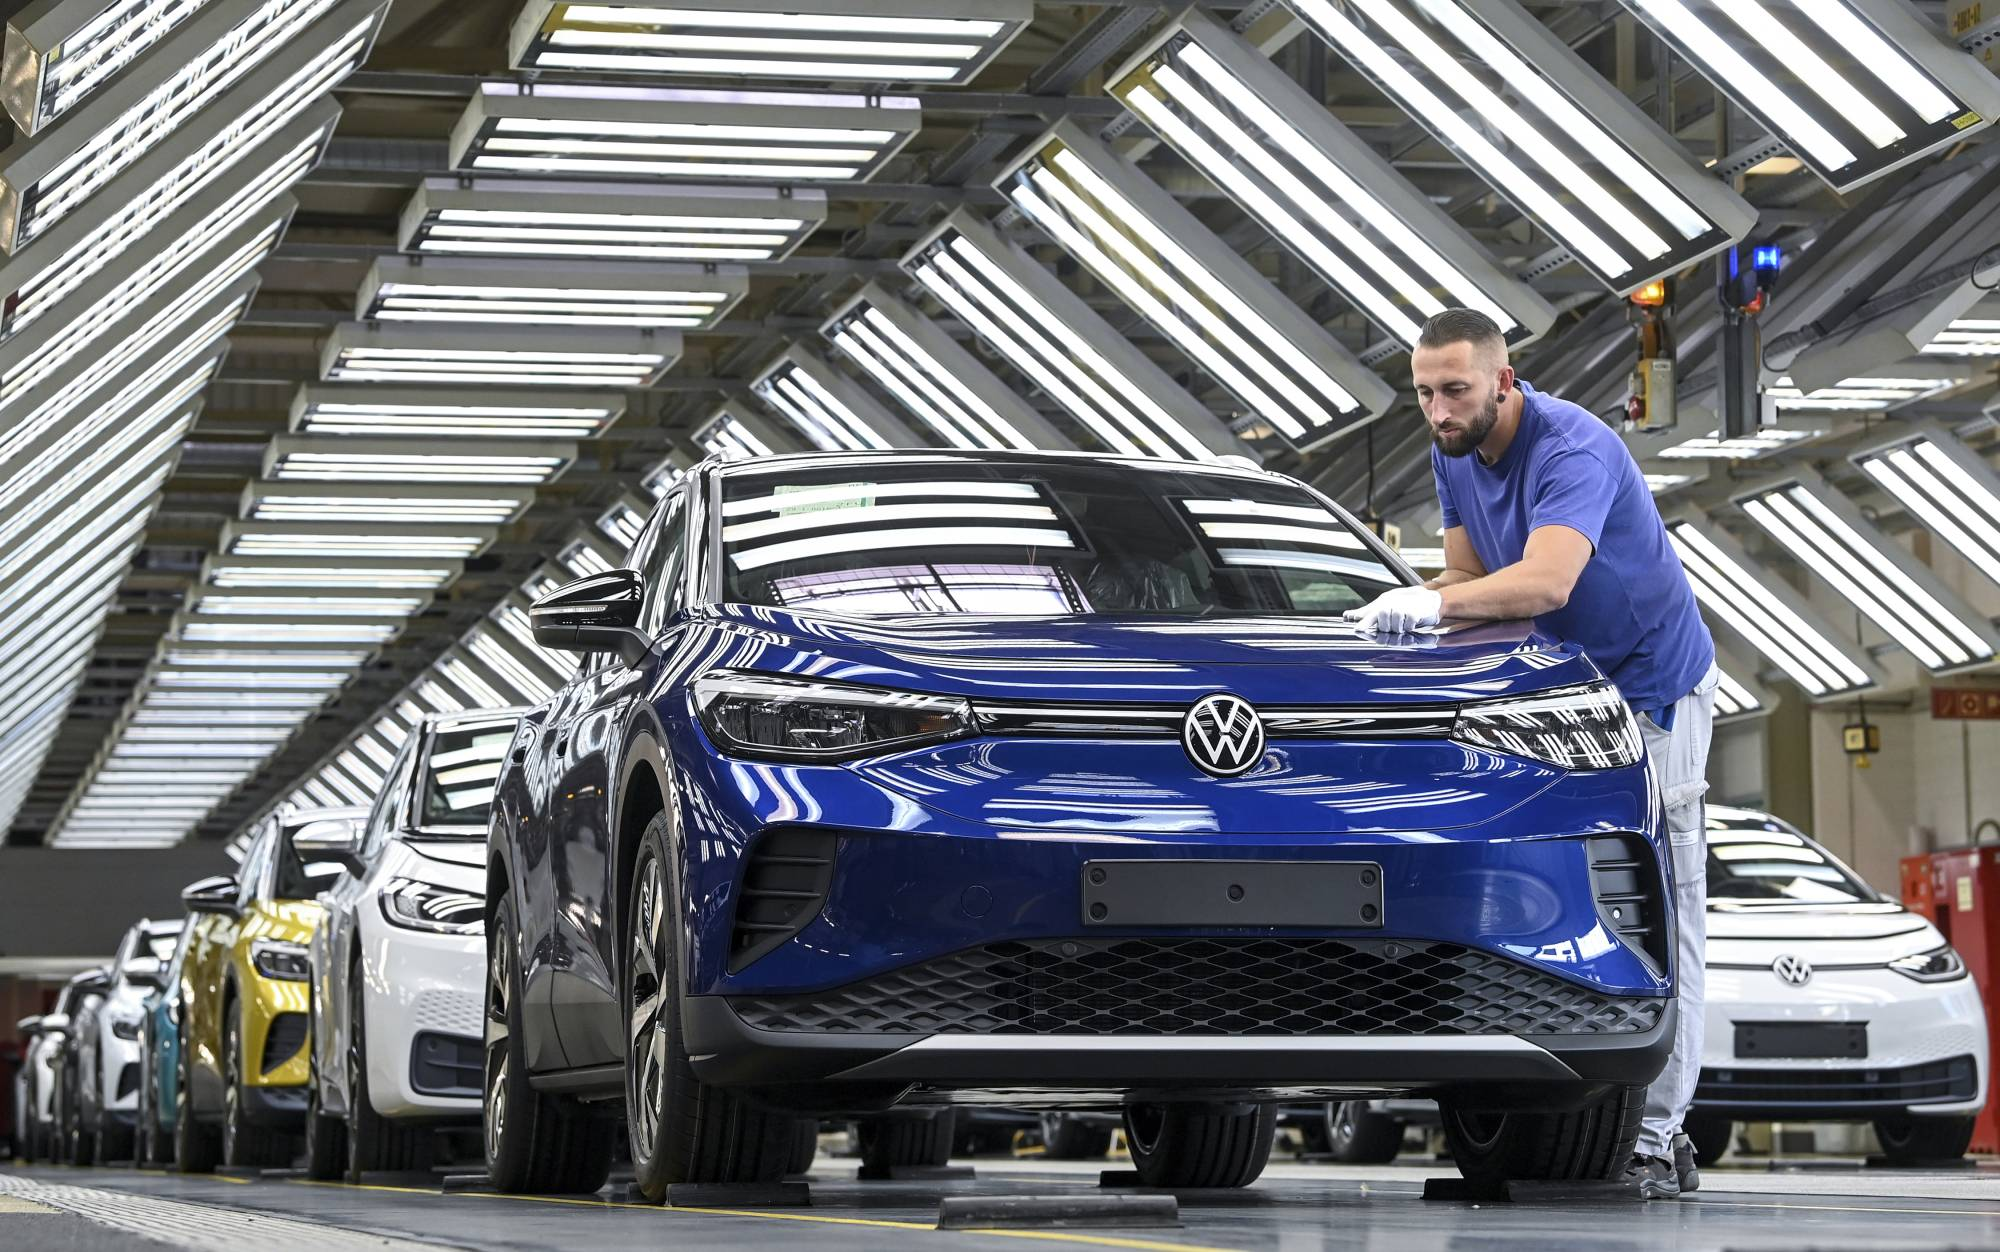 A worker puts the finishing touches on a battery-powered VW ID.4 at a plant in Zwickau, Germany, on Friday.  | DPA / VIA AP